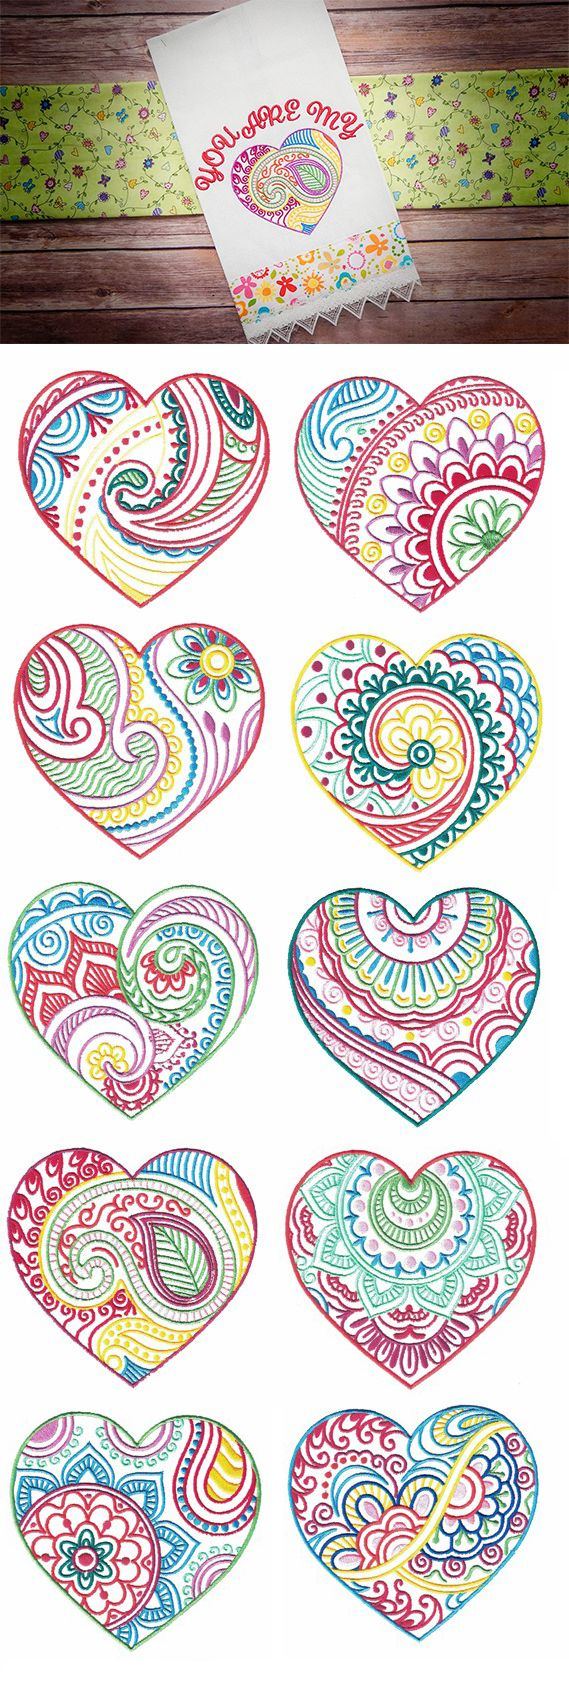 Mehndi Hearts design set available for instant download at designsbyjuju.com